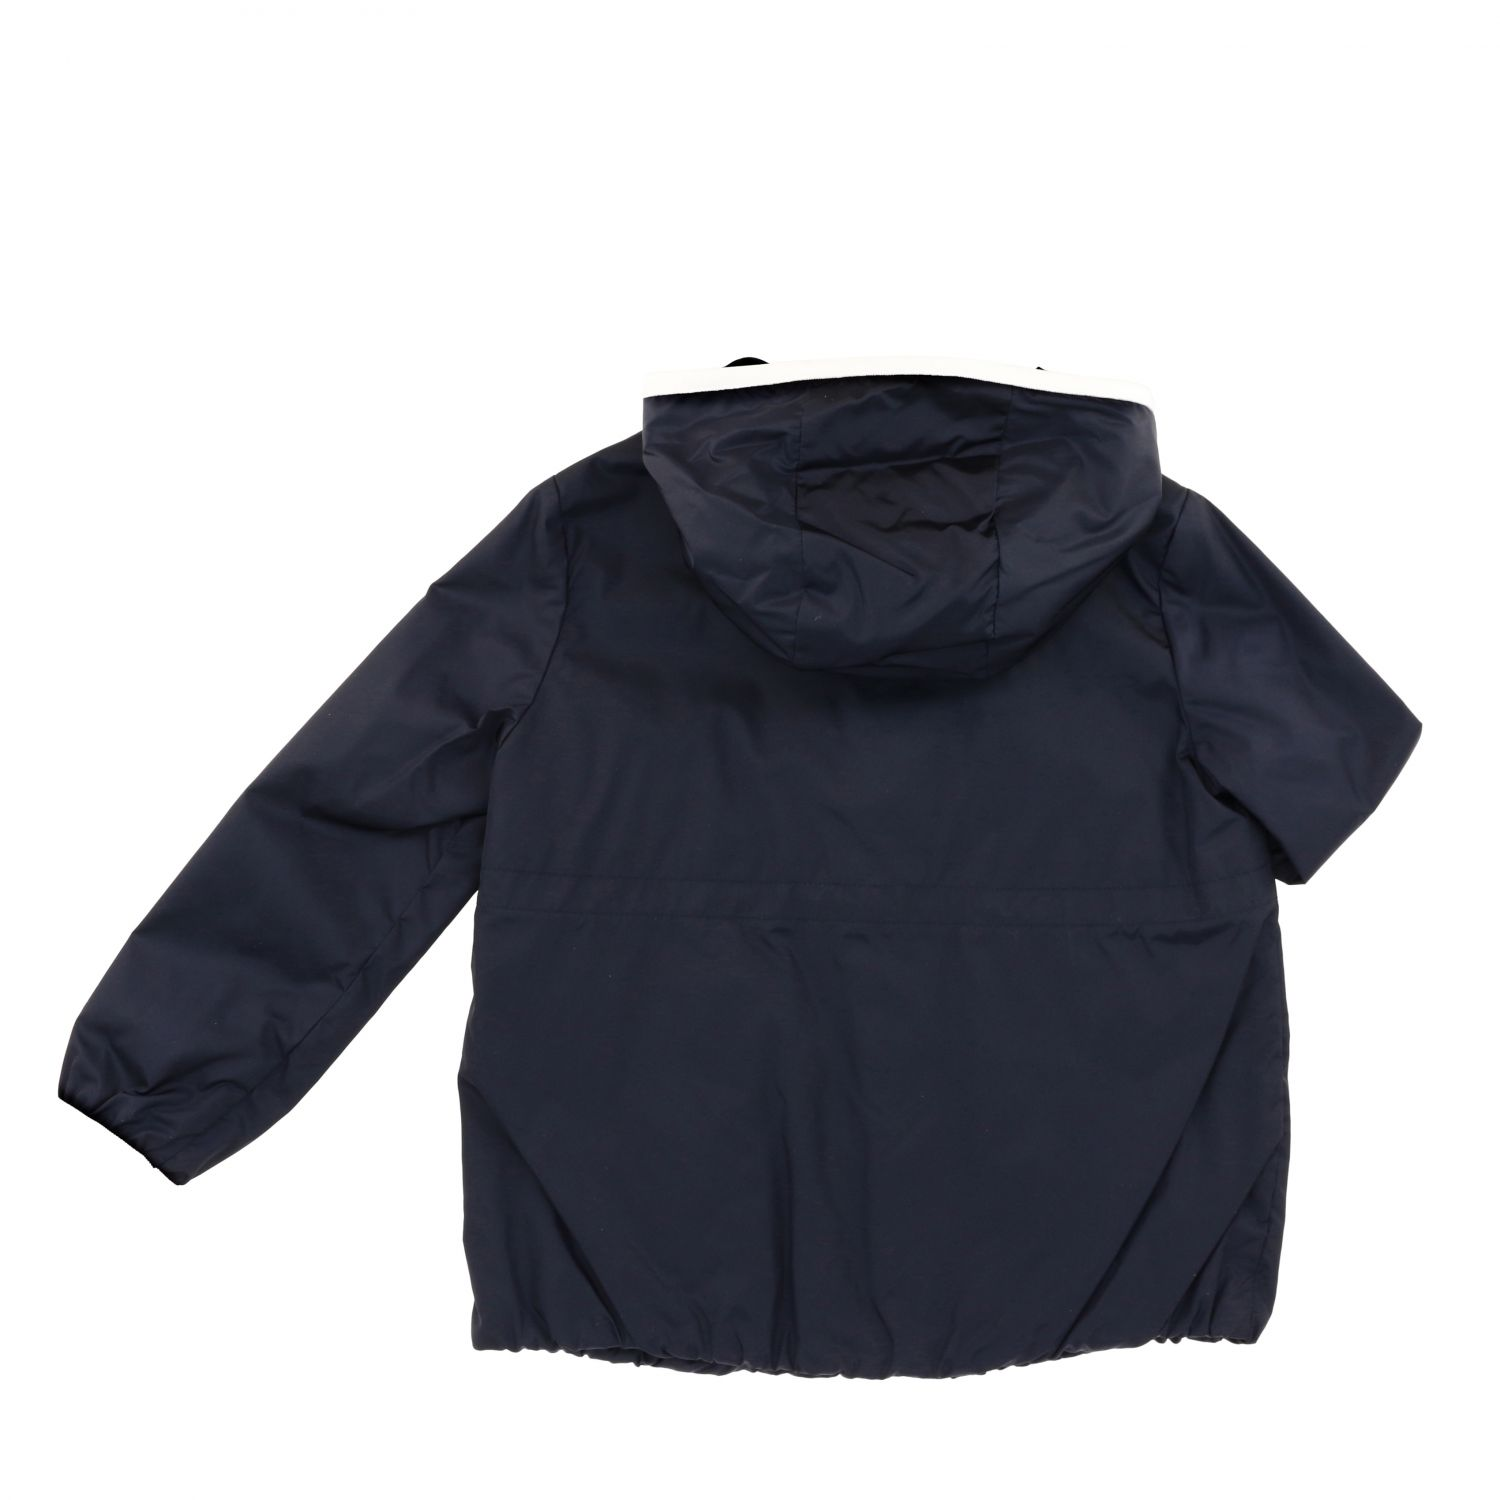 Moncler Eau nylon jacket with hood blue 2